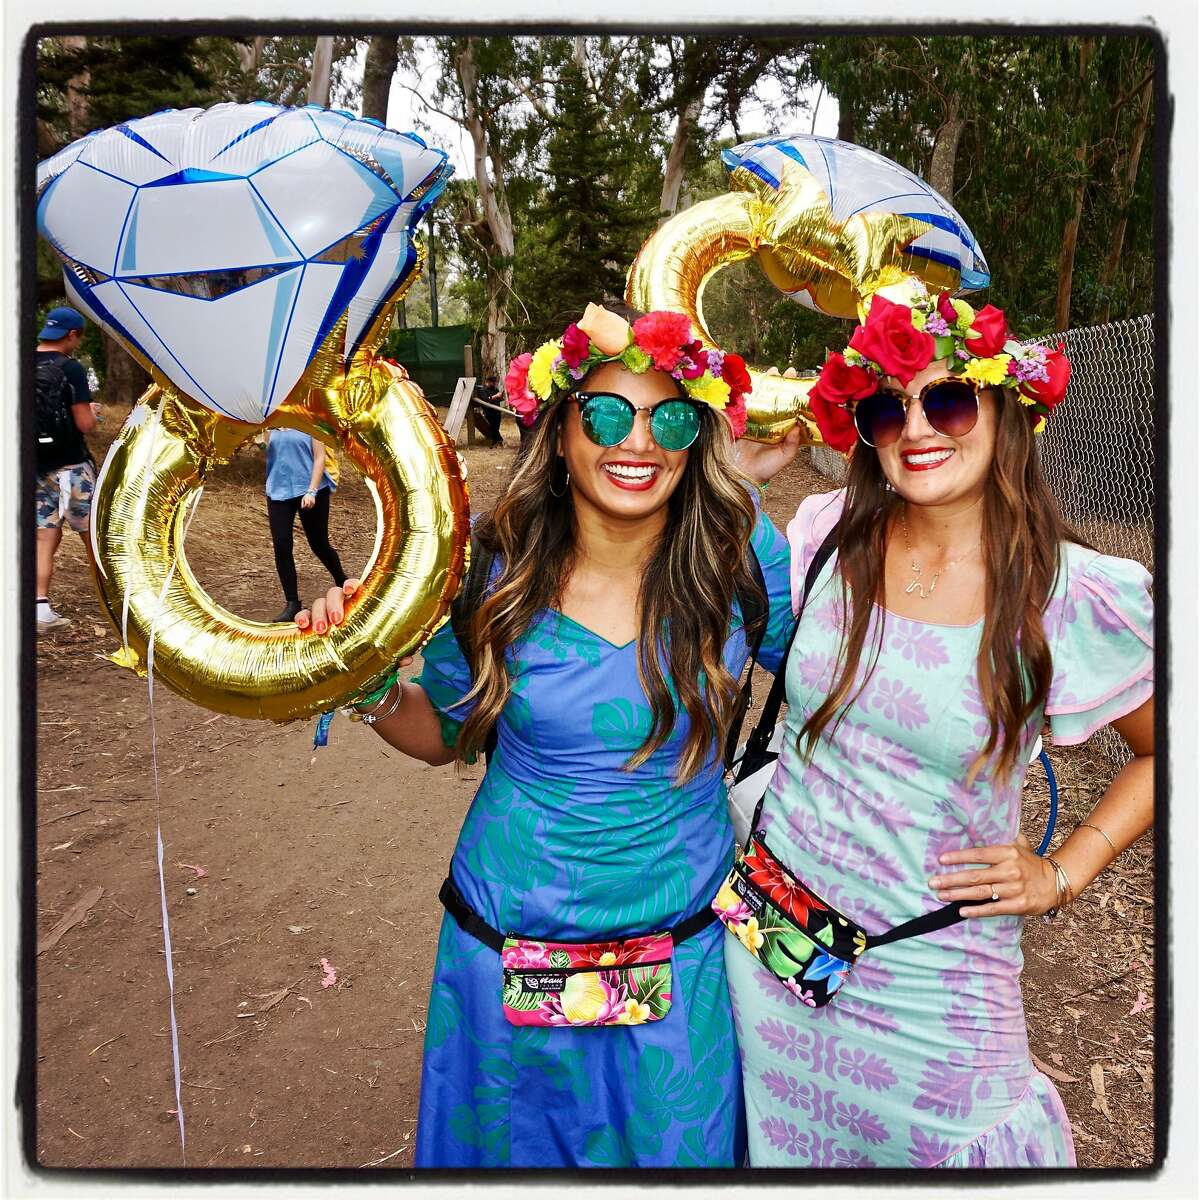 Leslie Benigno (left) and Gina Schipa of Hawaii traveled to Outside Lands for a Hen party with their friends and fiances. Aug. 13, 2017.